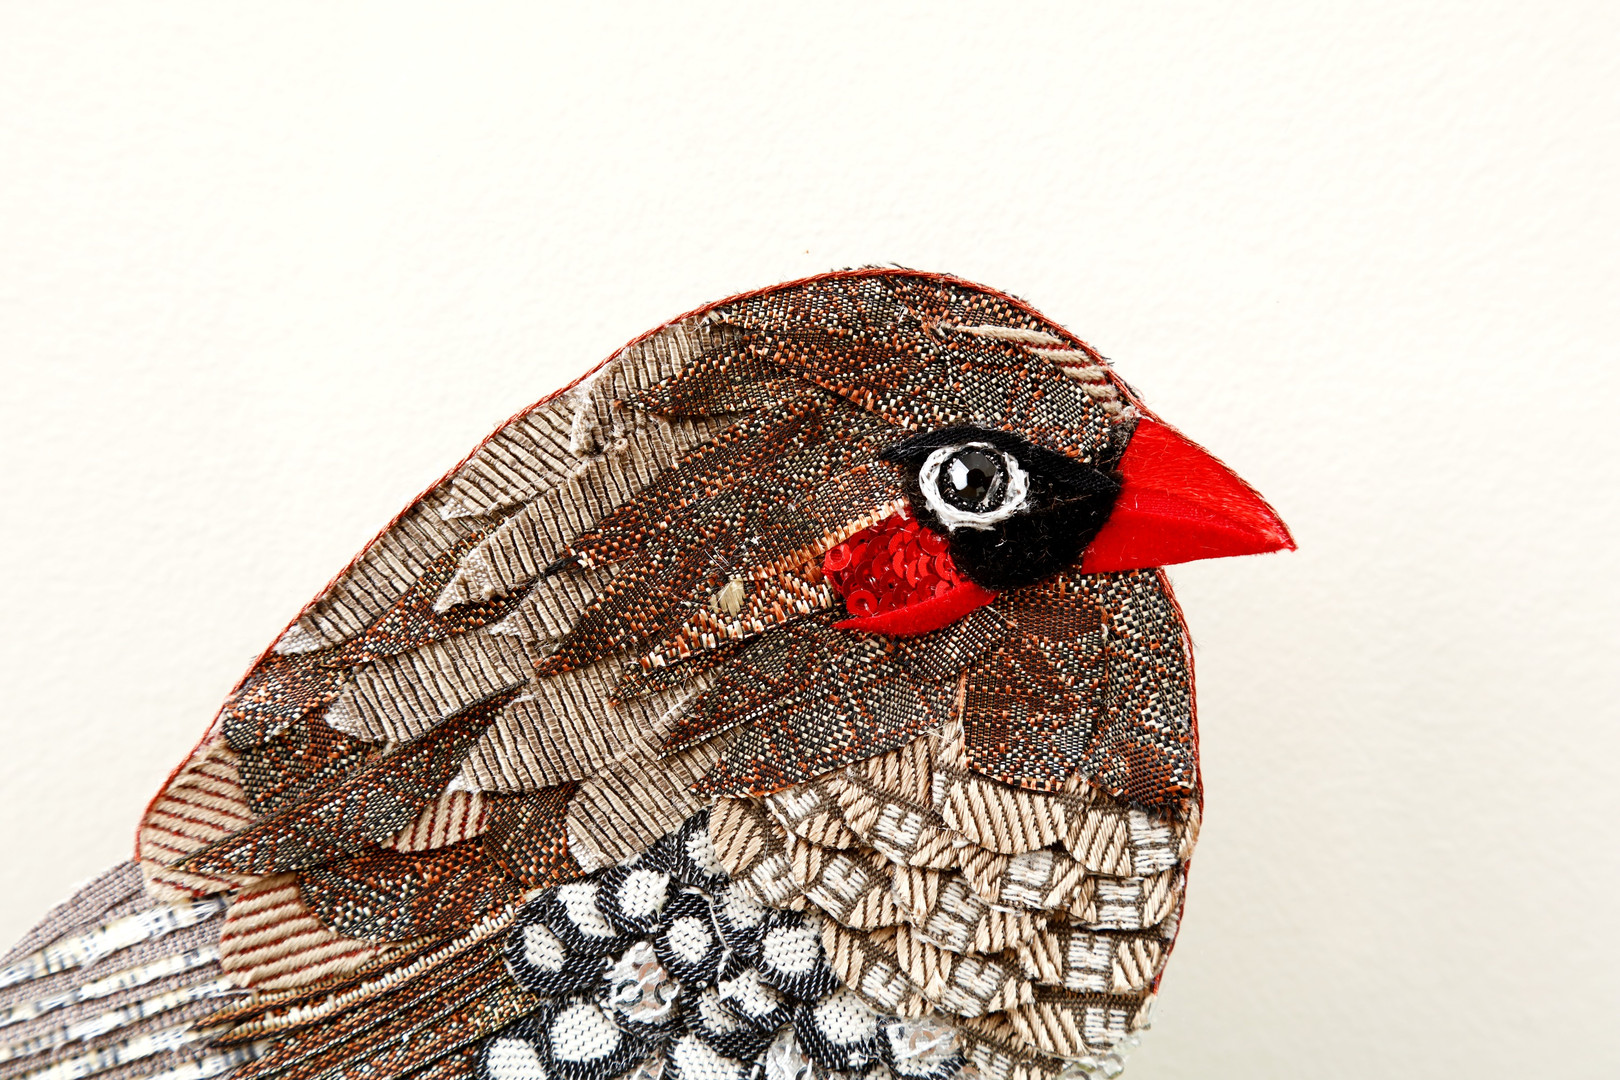 Details of Fire-tail finch